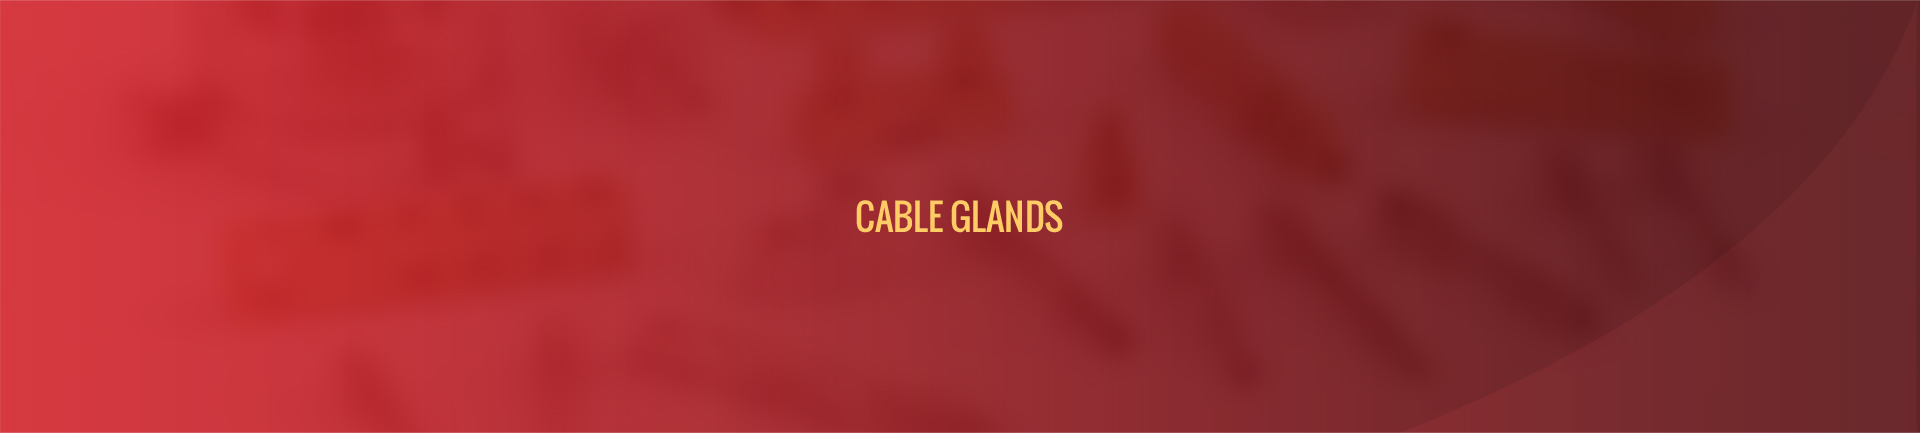 cable-glands-banner